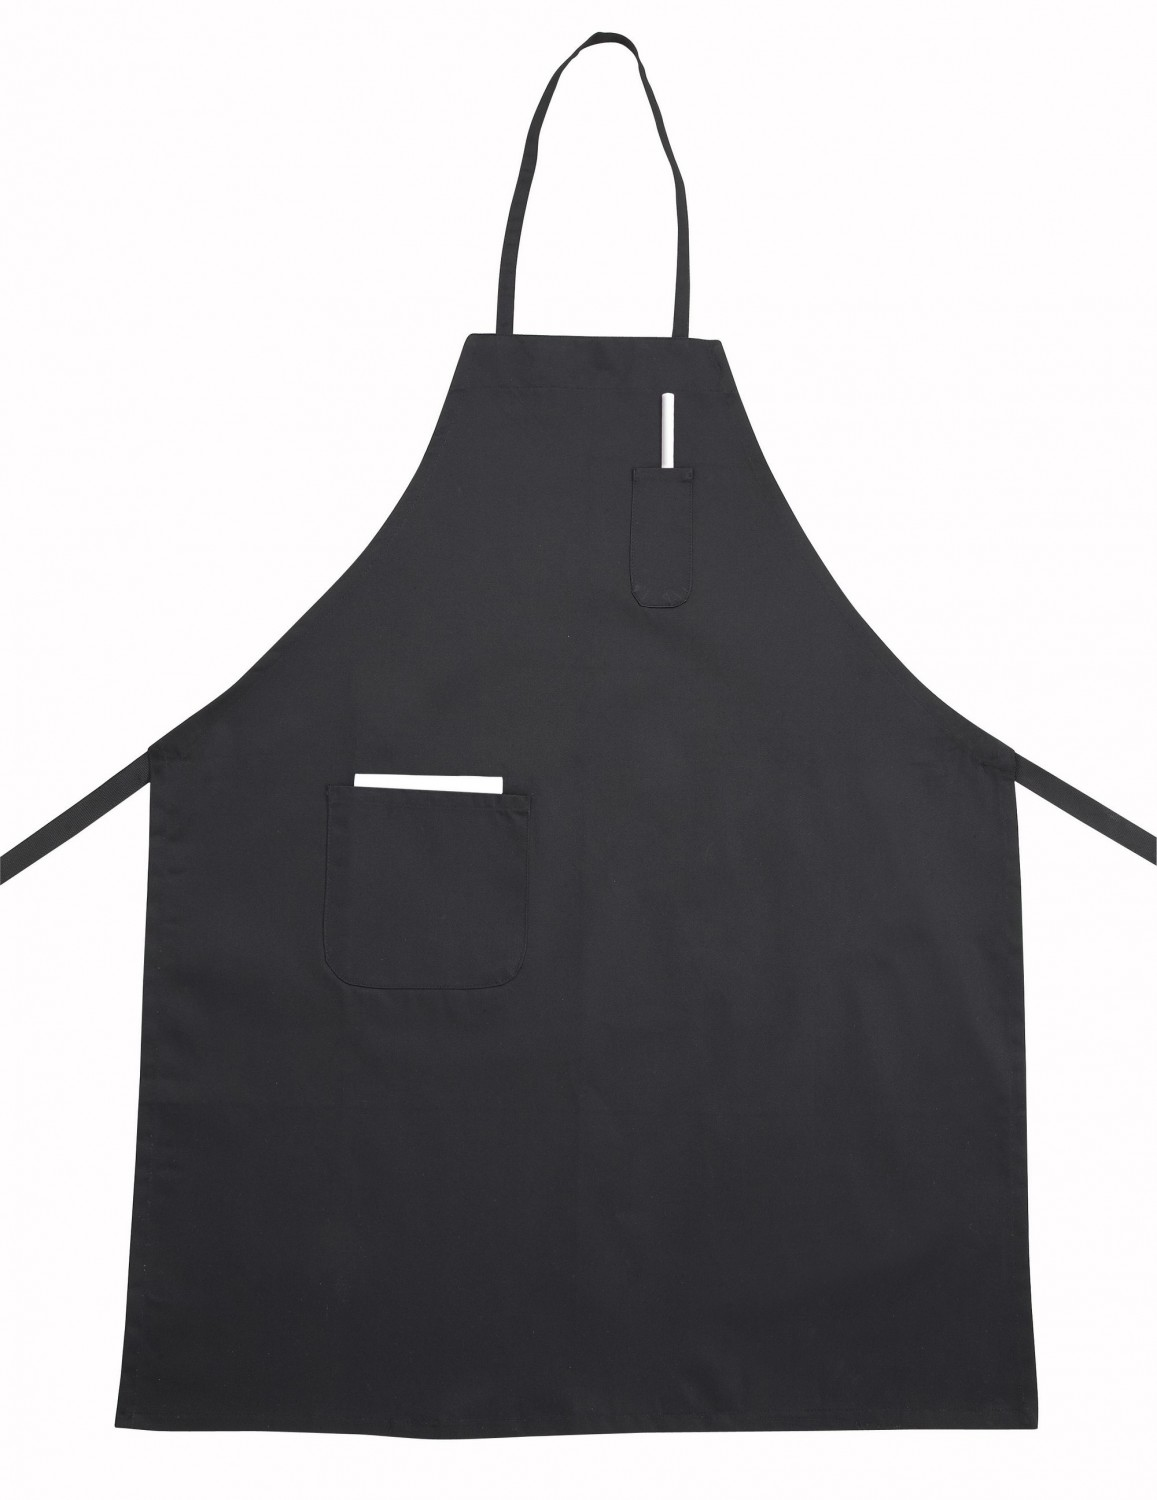 Winco BA-PBK Black Full-Length Bib Apron with Pocket